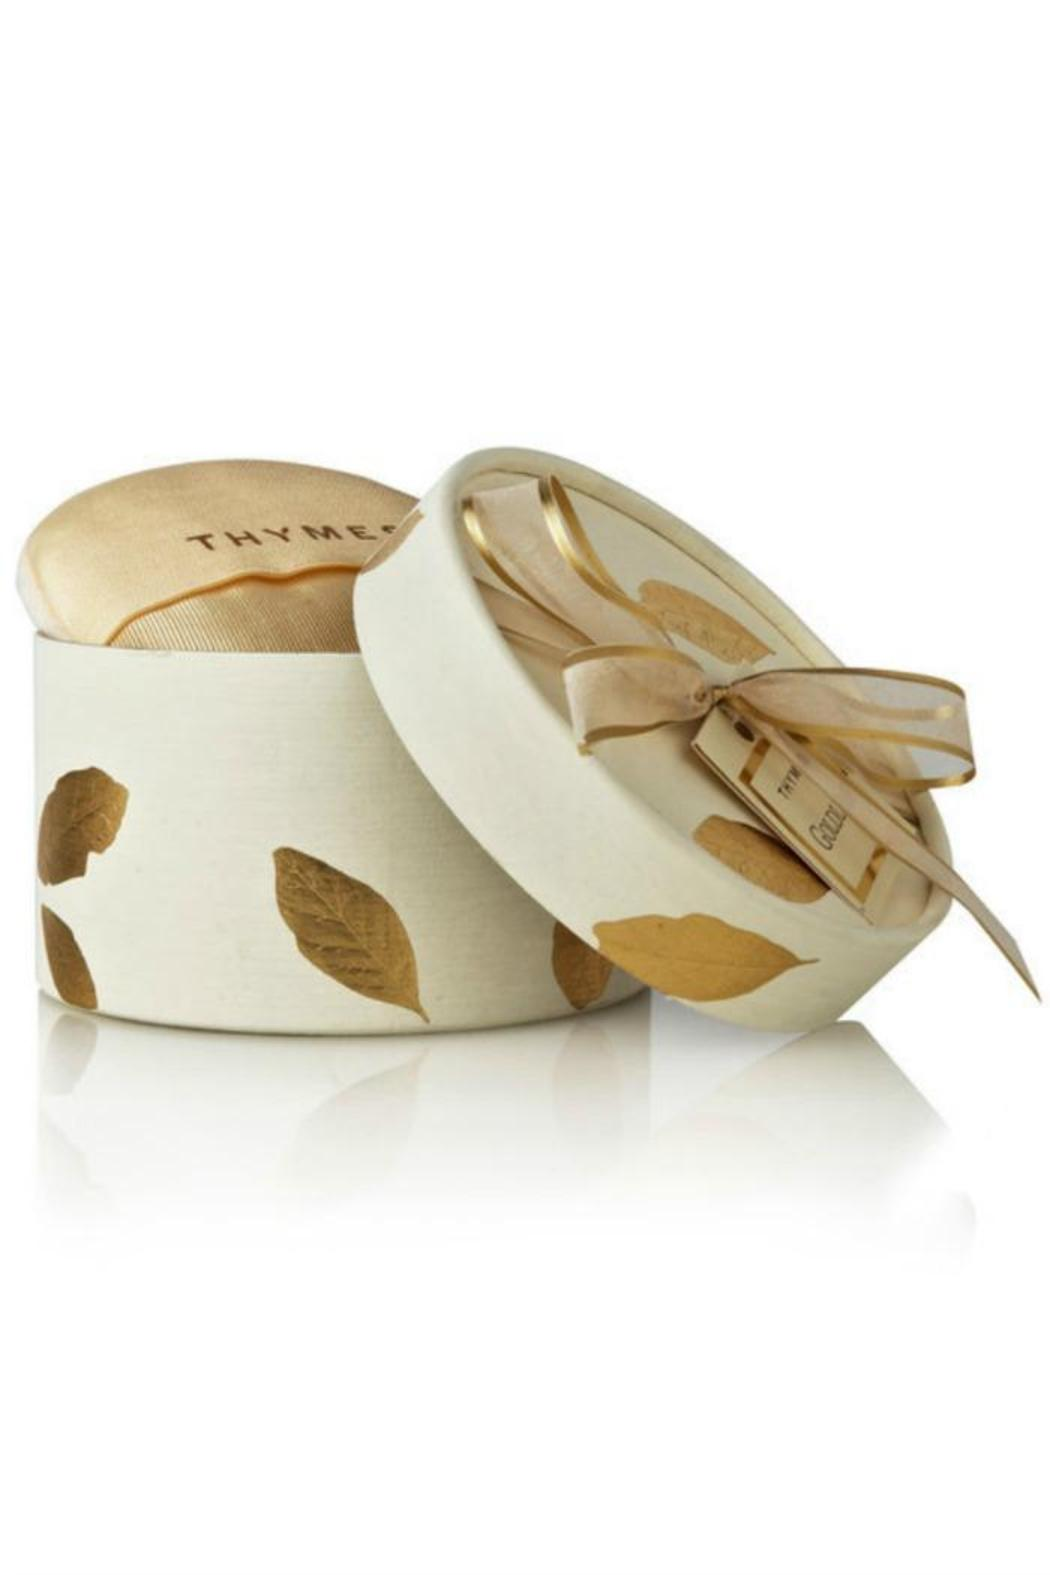 Thymes Goldleaf Dusting Powder - Main Image